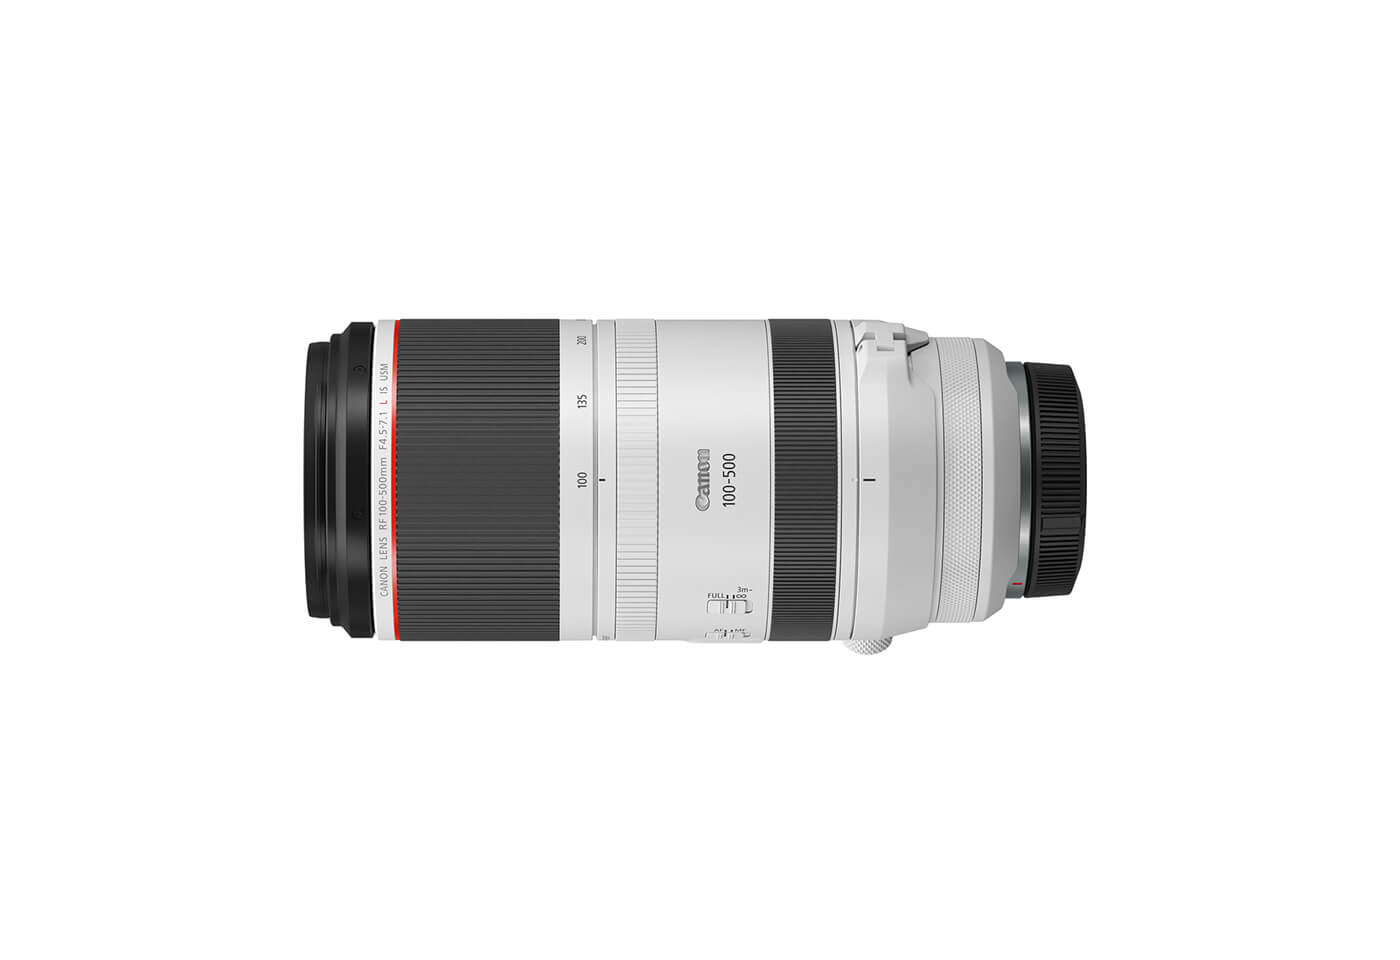 Product image of RF 100-500mm f/4.5-7.1 L IS USM telephoto lens